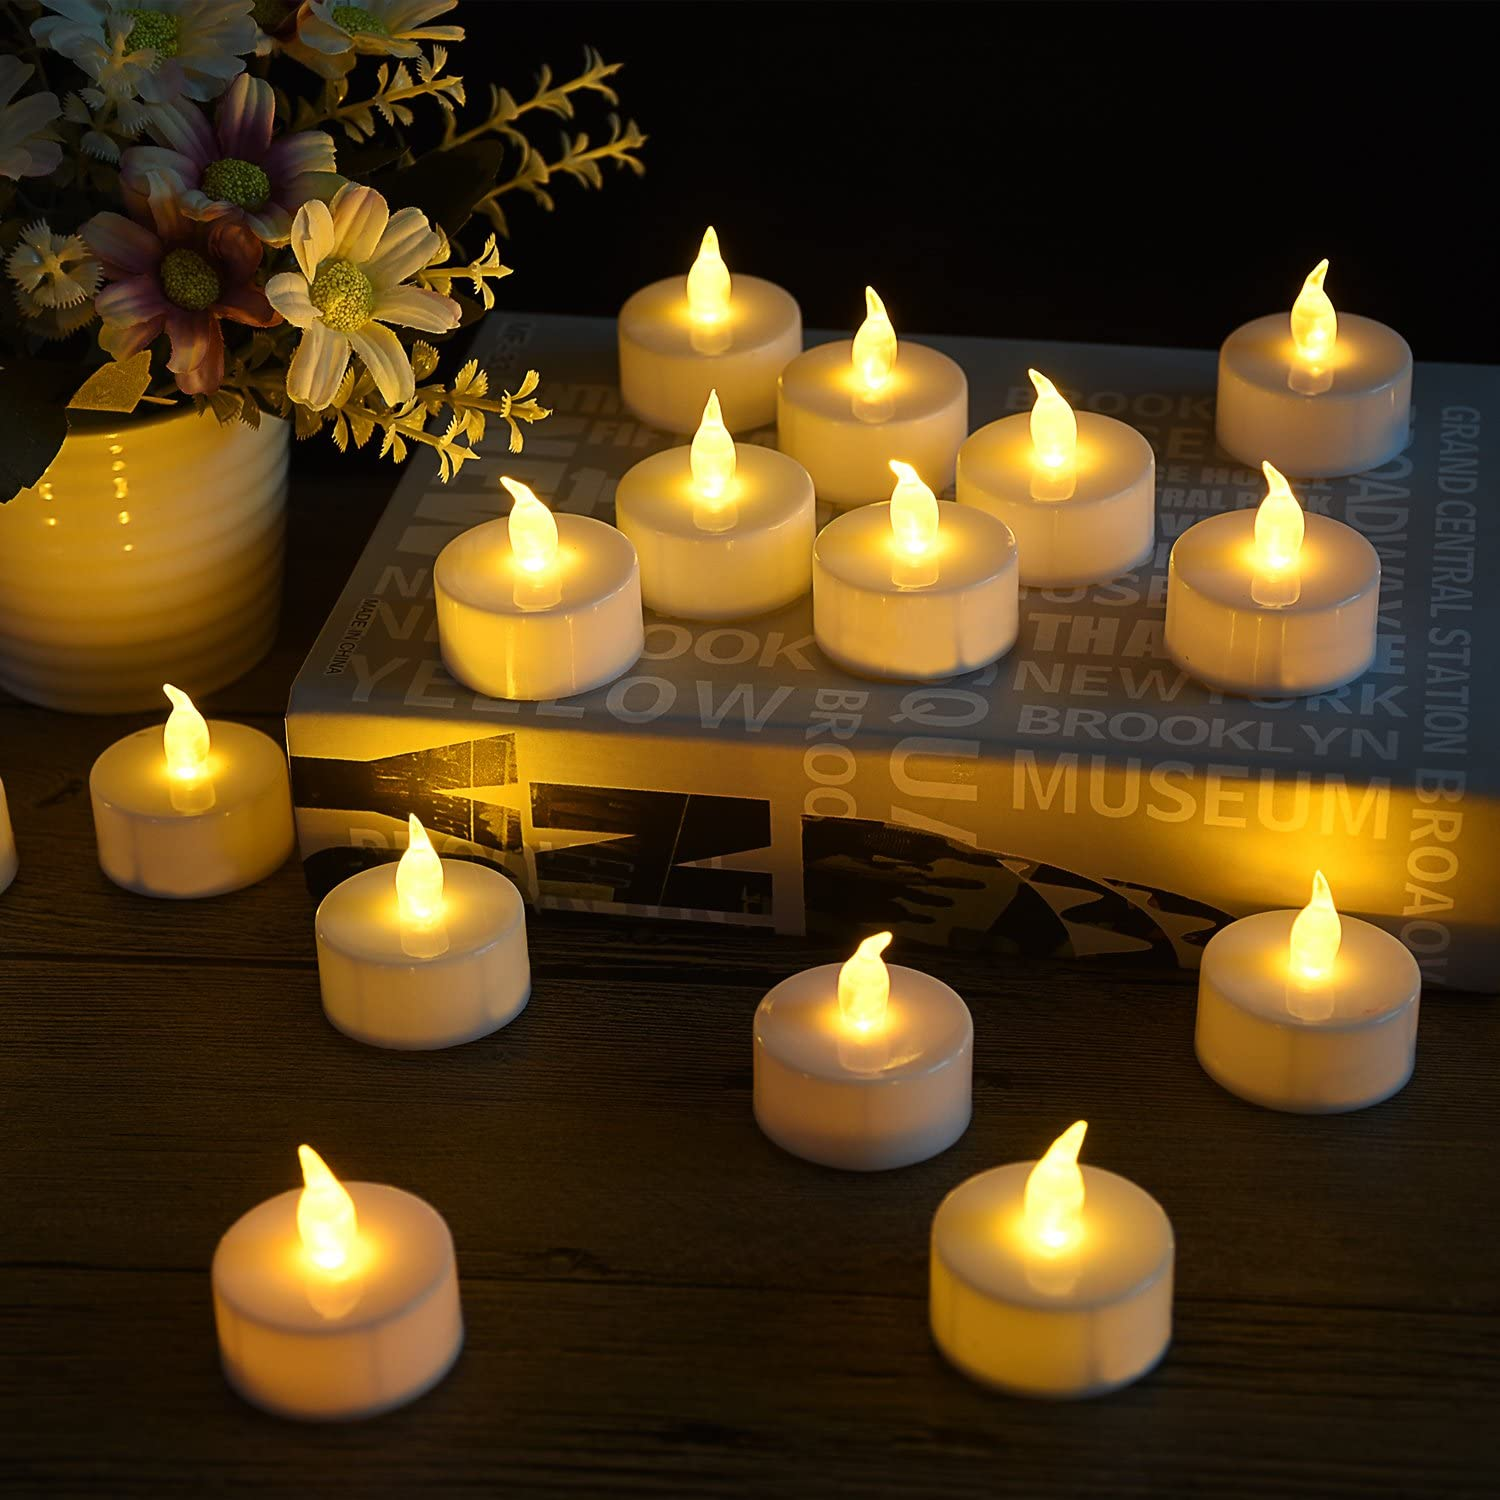 Gifts and Home Decoration Tea Light 100 Pack Flameless LED Tea Lights Candles Flickering Warm White 100+ Hours Battery-Powered Tealight Candle Ideal for Party 100 Birthday Wedding